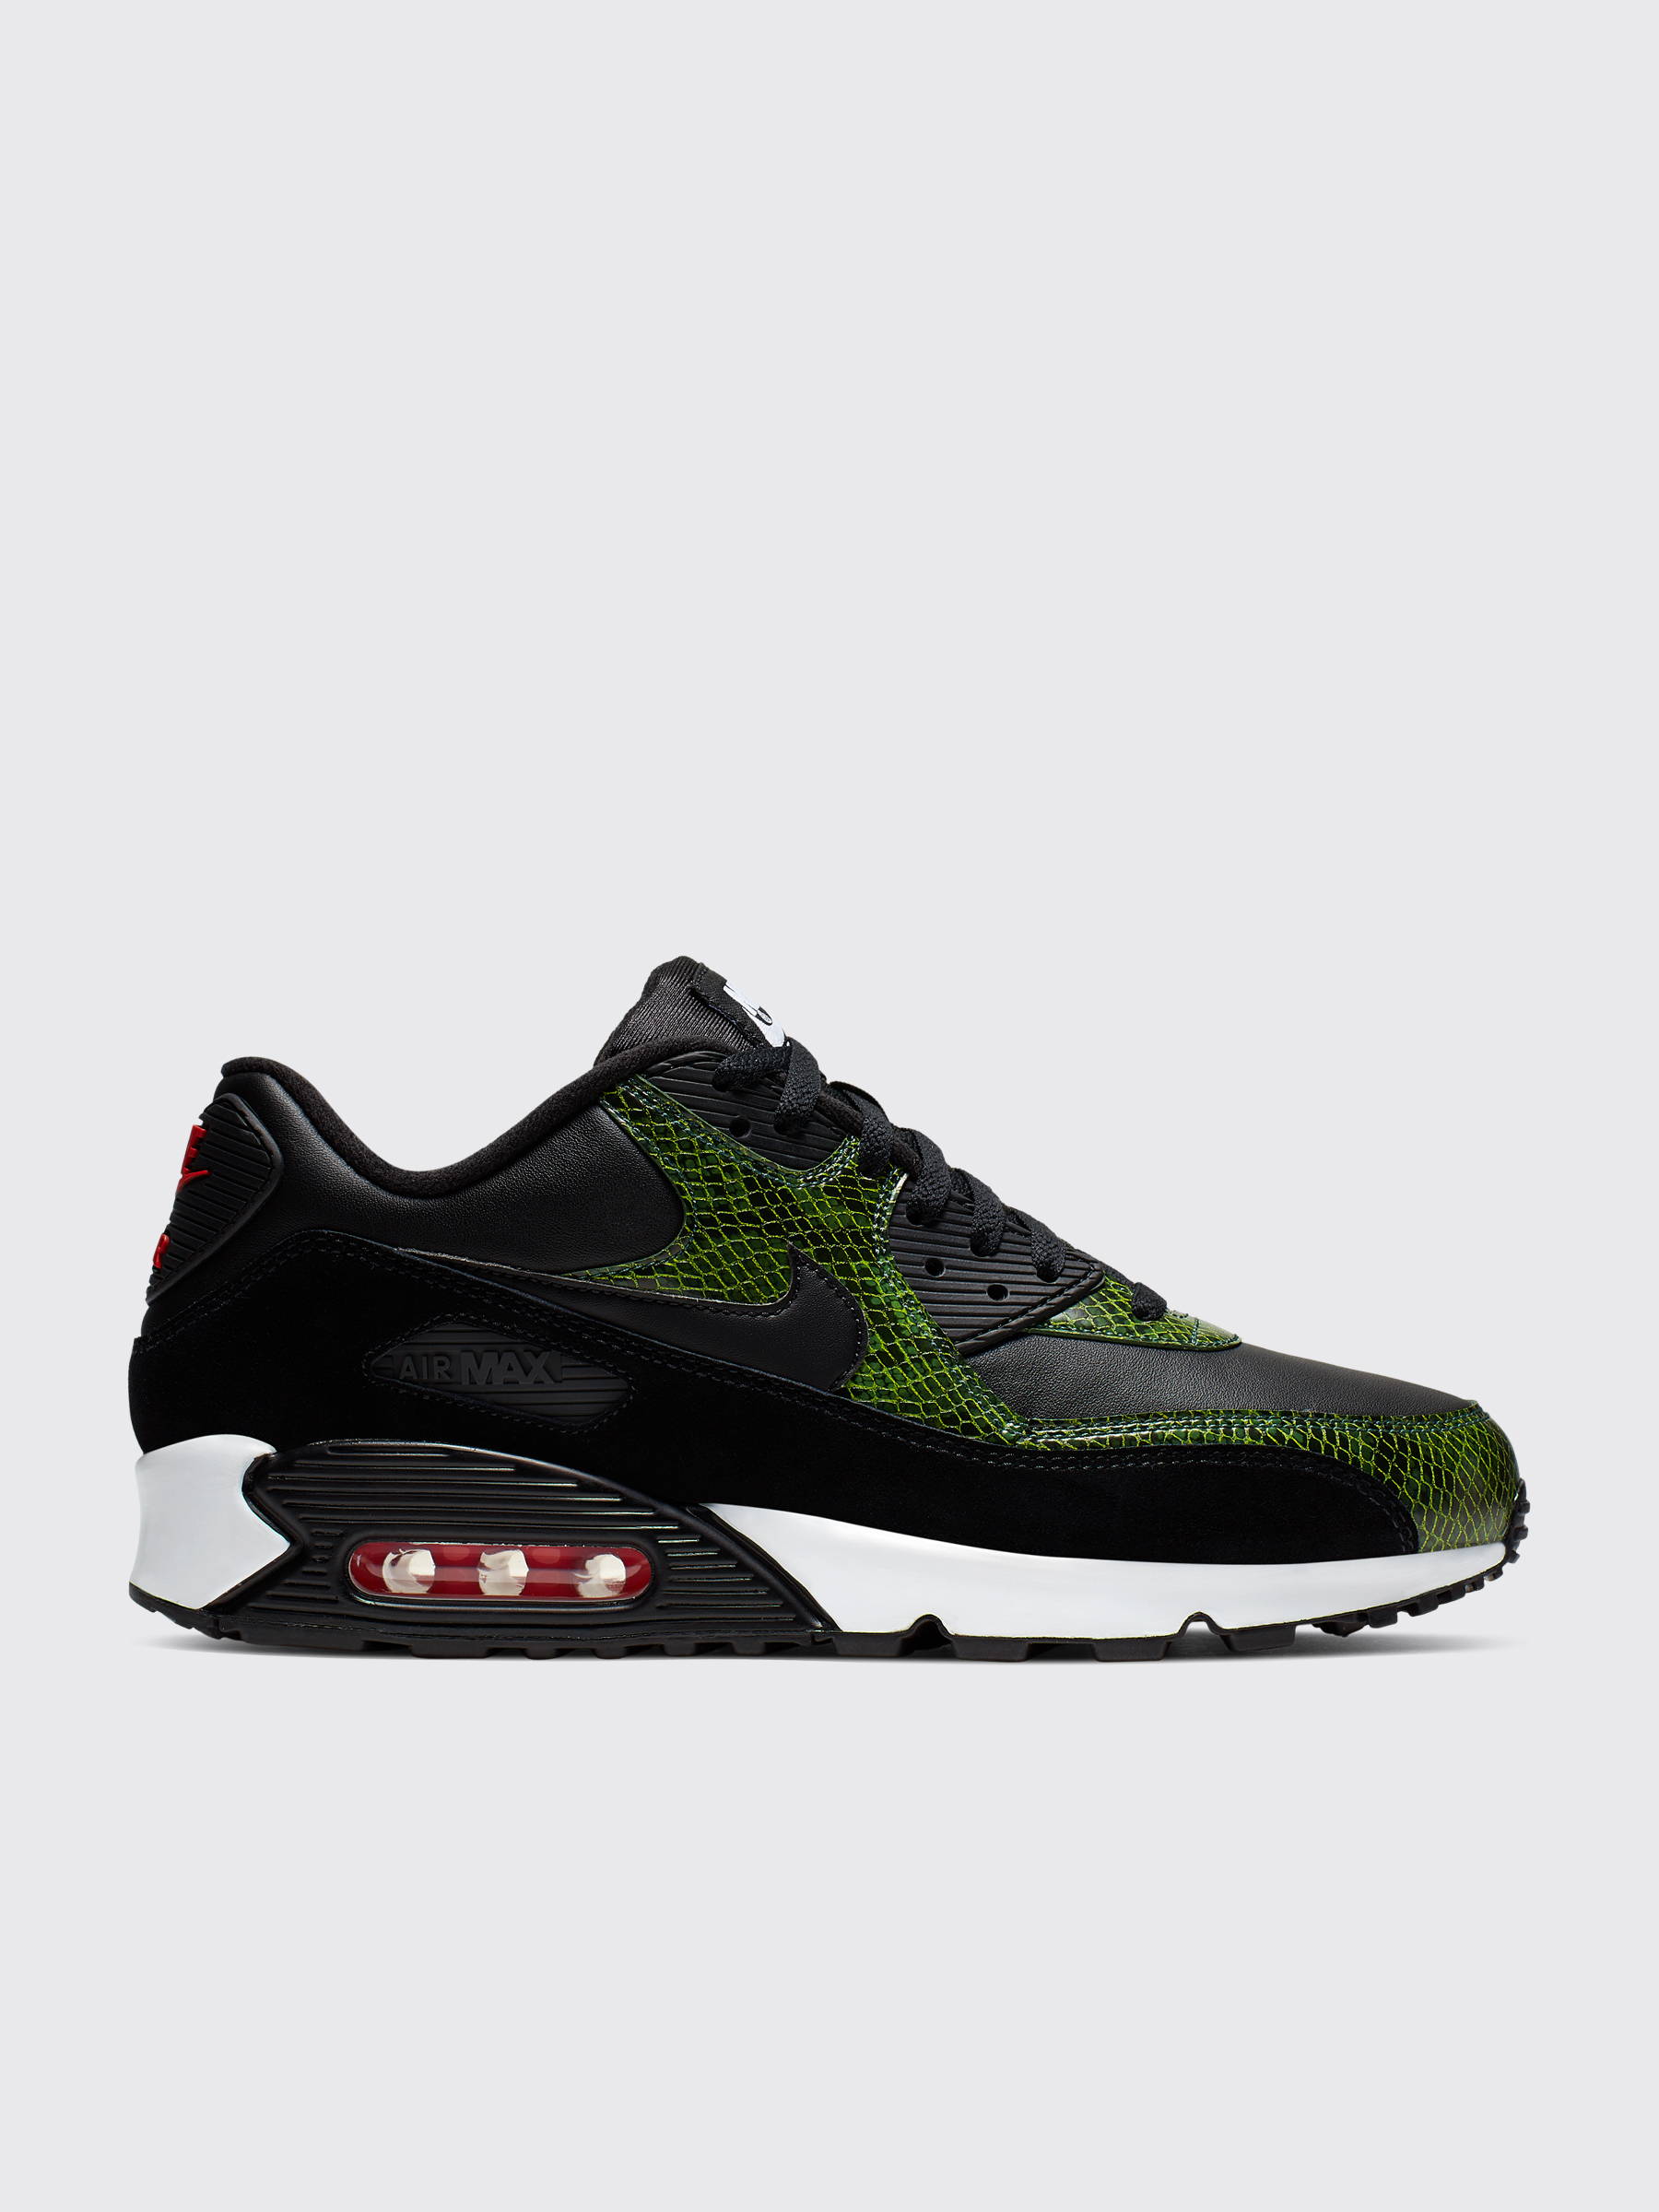 timeless design 89c9d 5e37c Nike Air Max 90 QS Black / Green